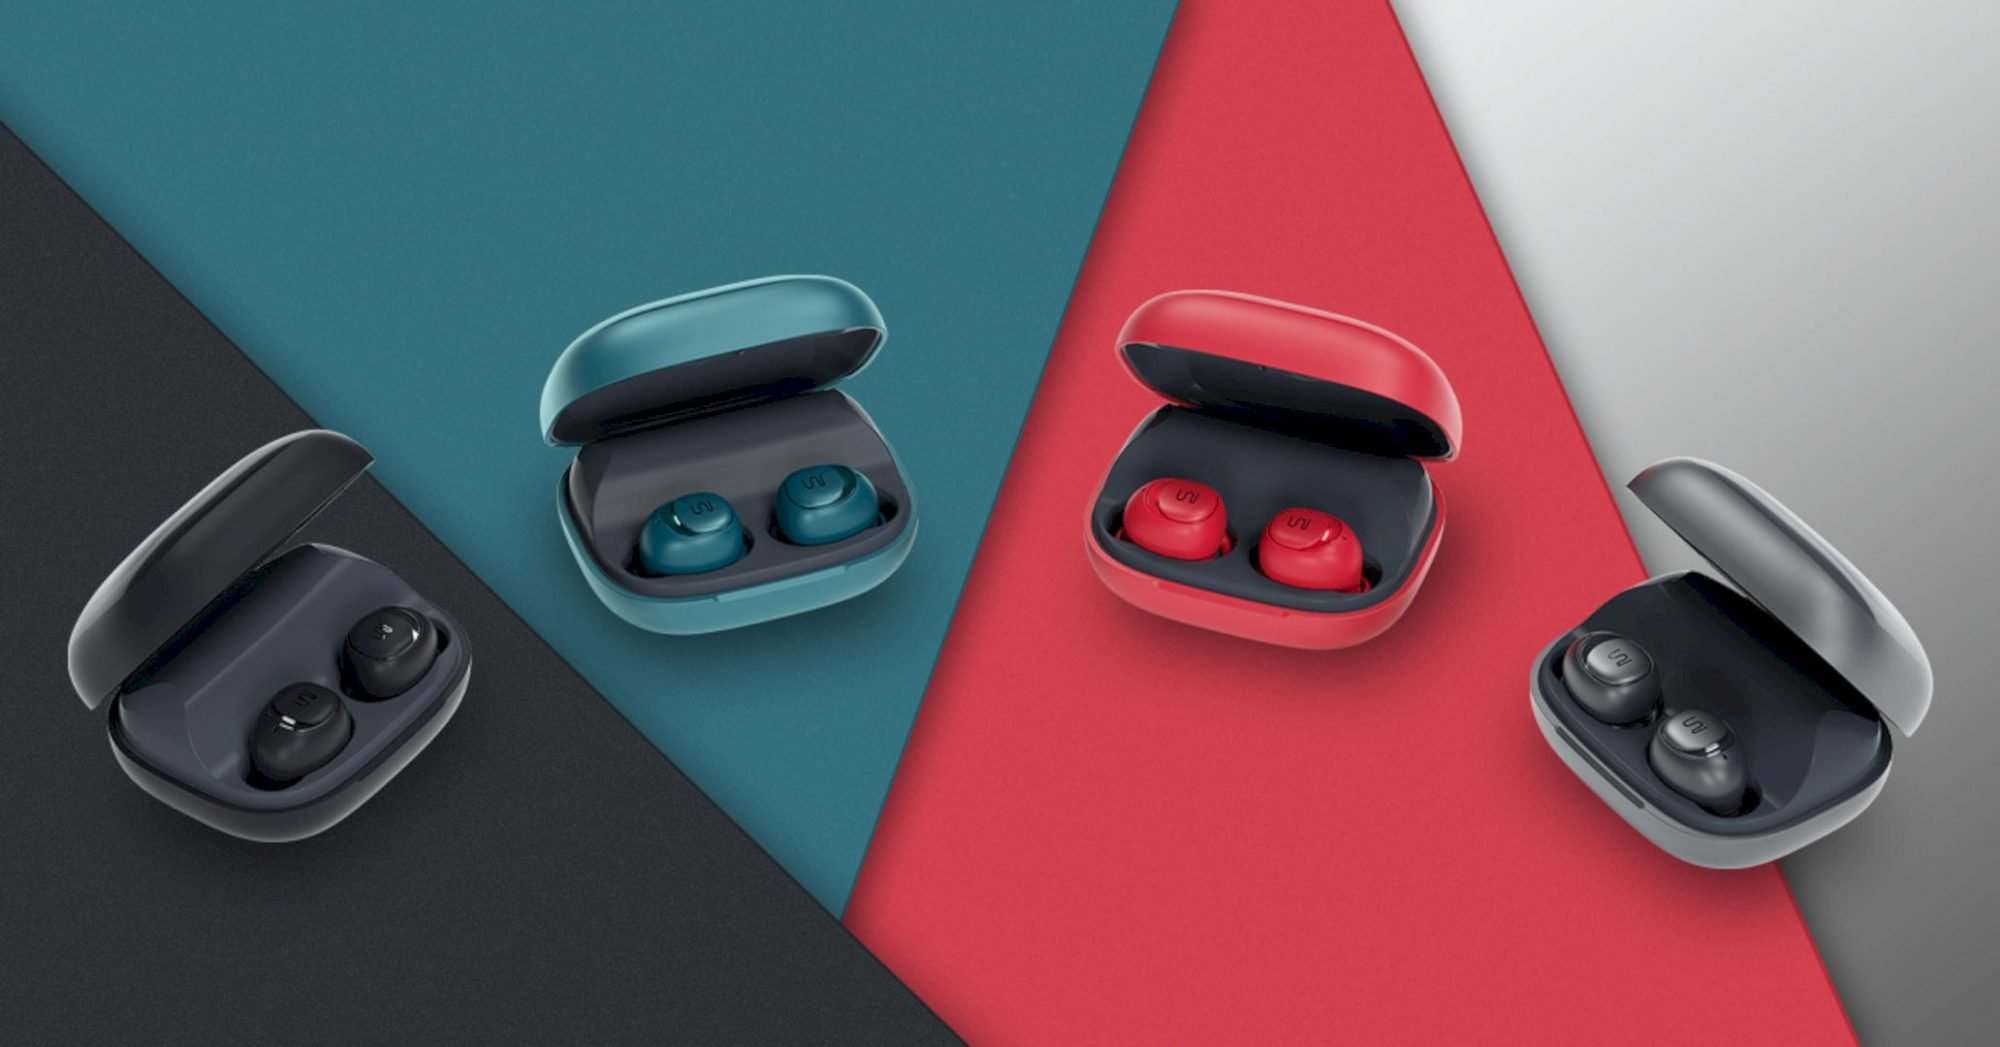 Uni TWS: The Most Advanced Wireless Earbuds